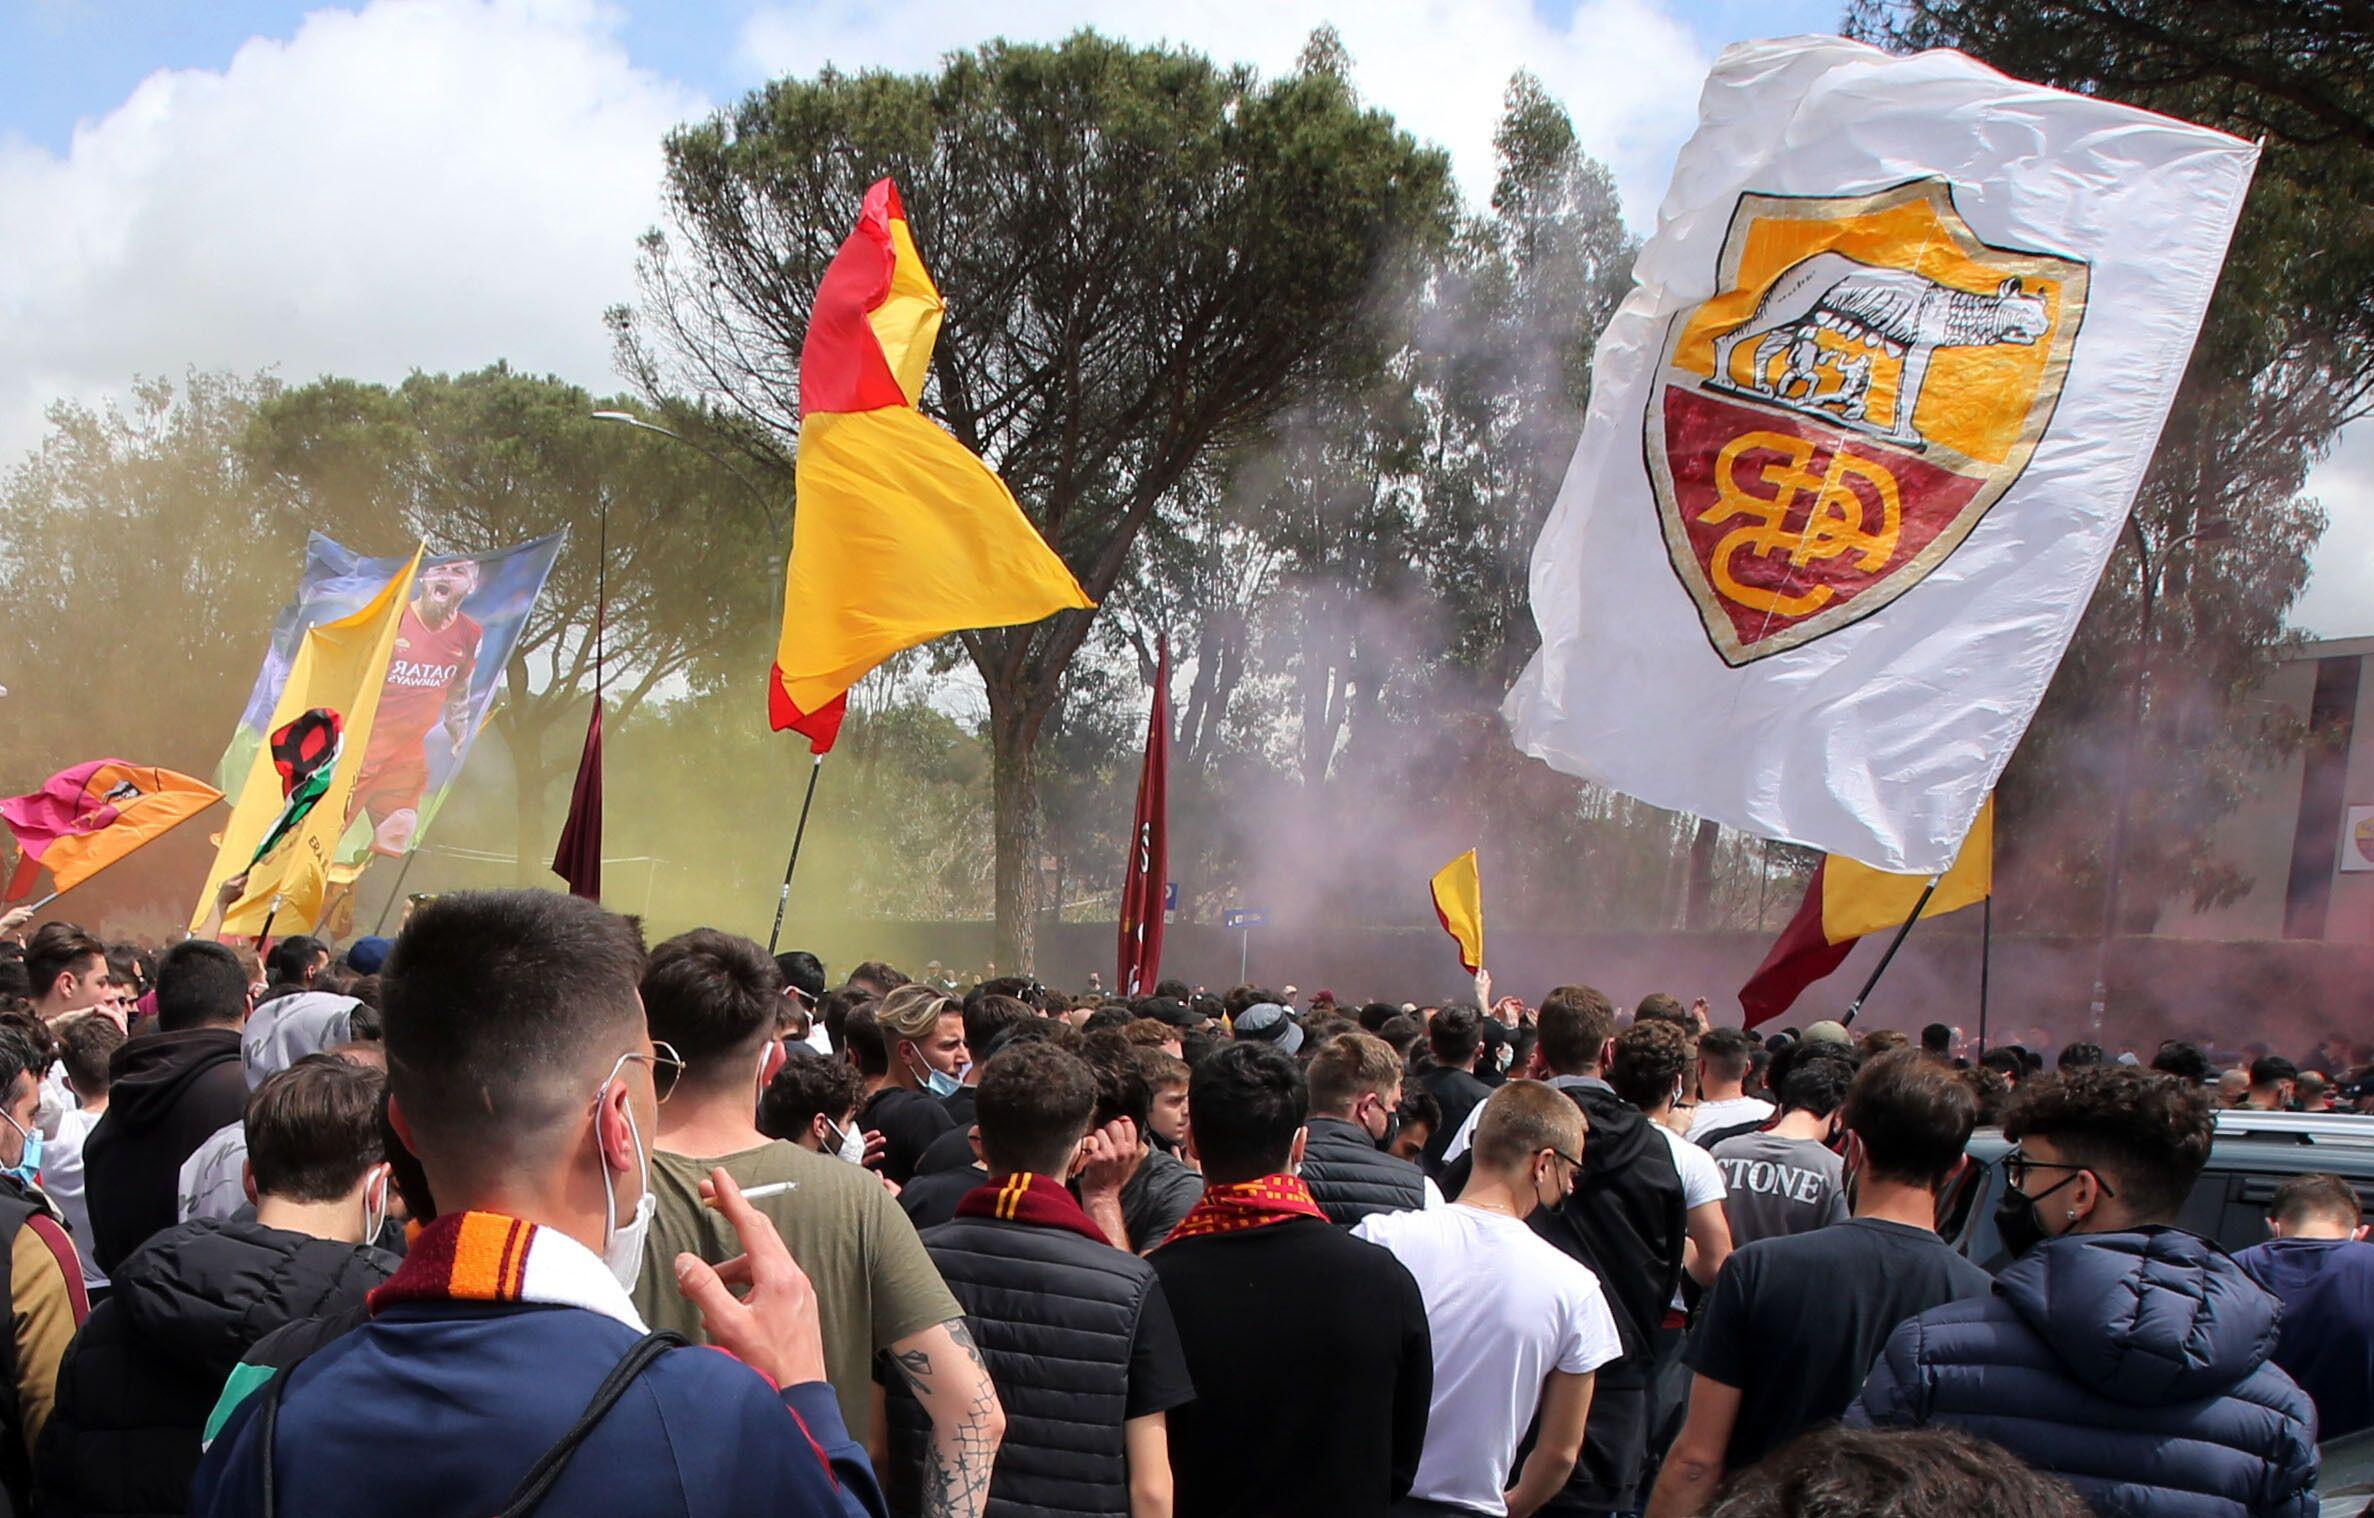 Awaiting Mourinho: AS Roma and the quest for credibility